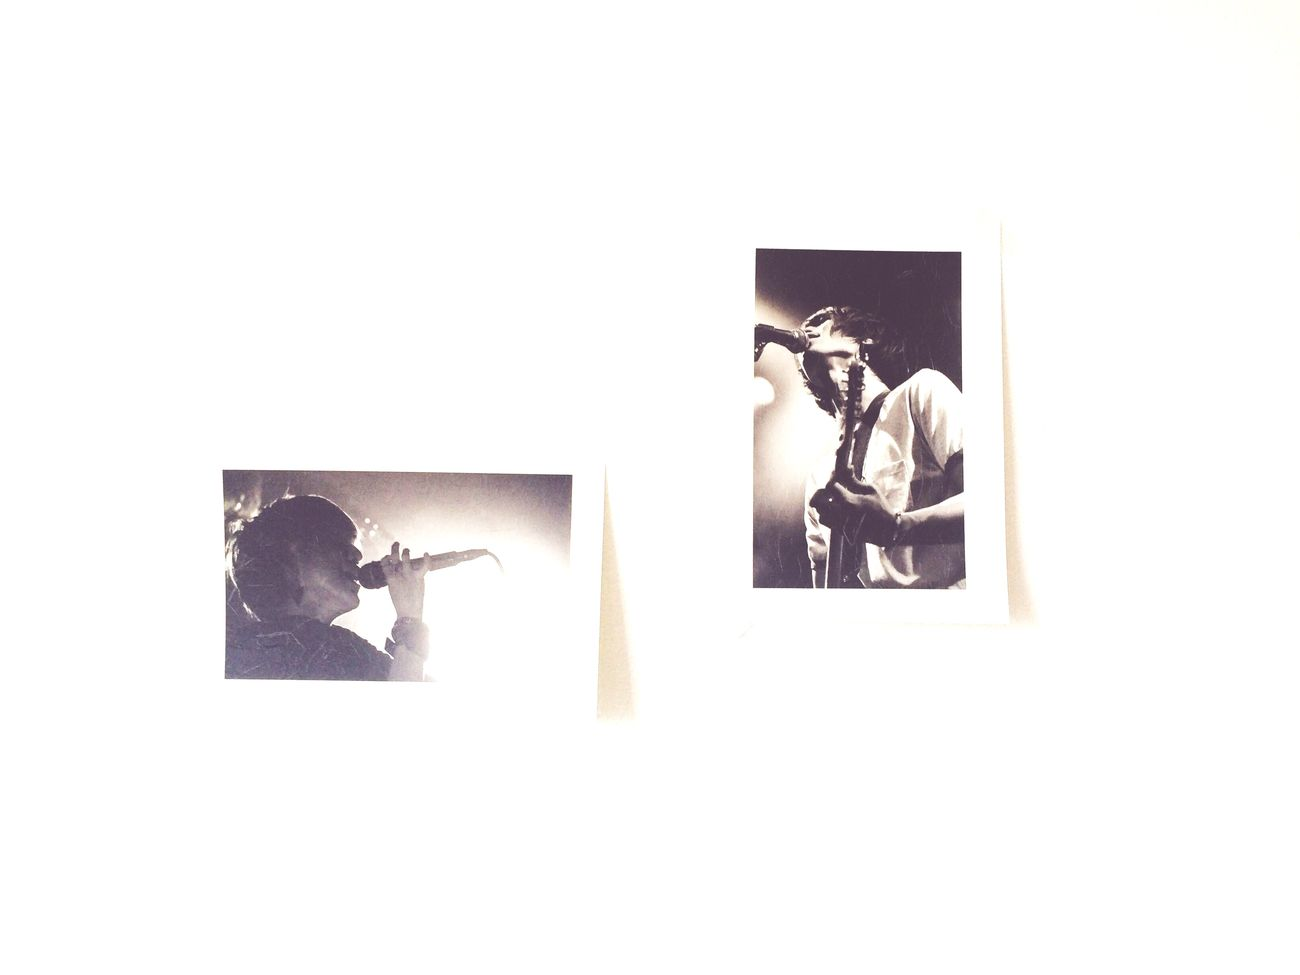 Music Musician Live Photo Rock Japanese Paper 和紙 Monochrome Light And Shadow 光と影